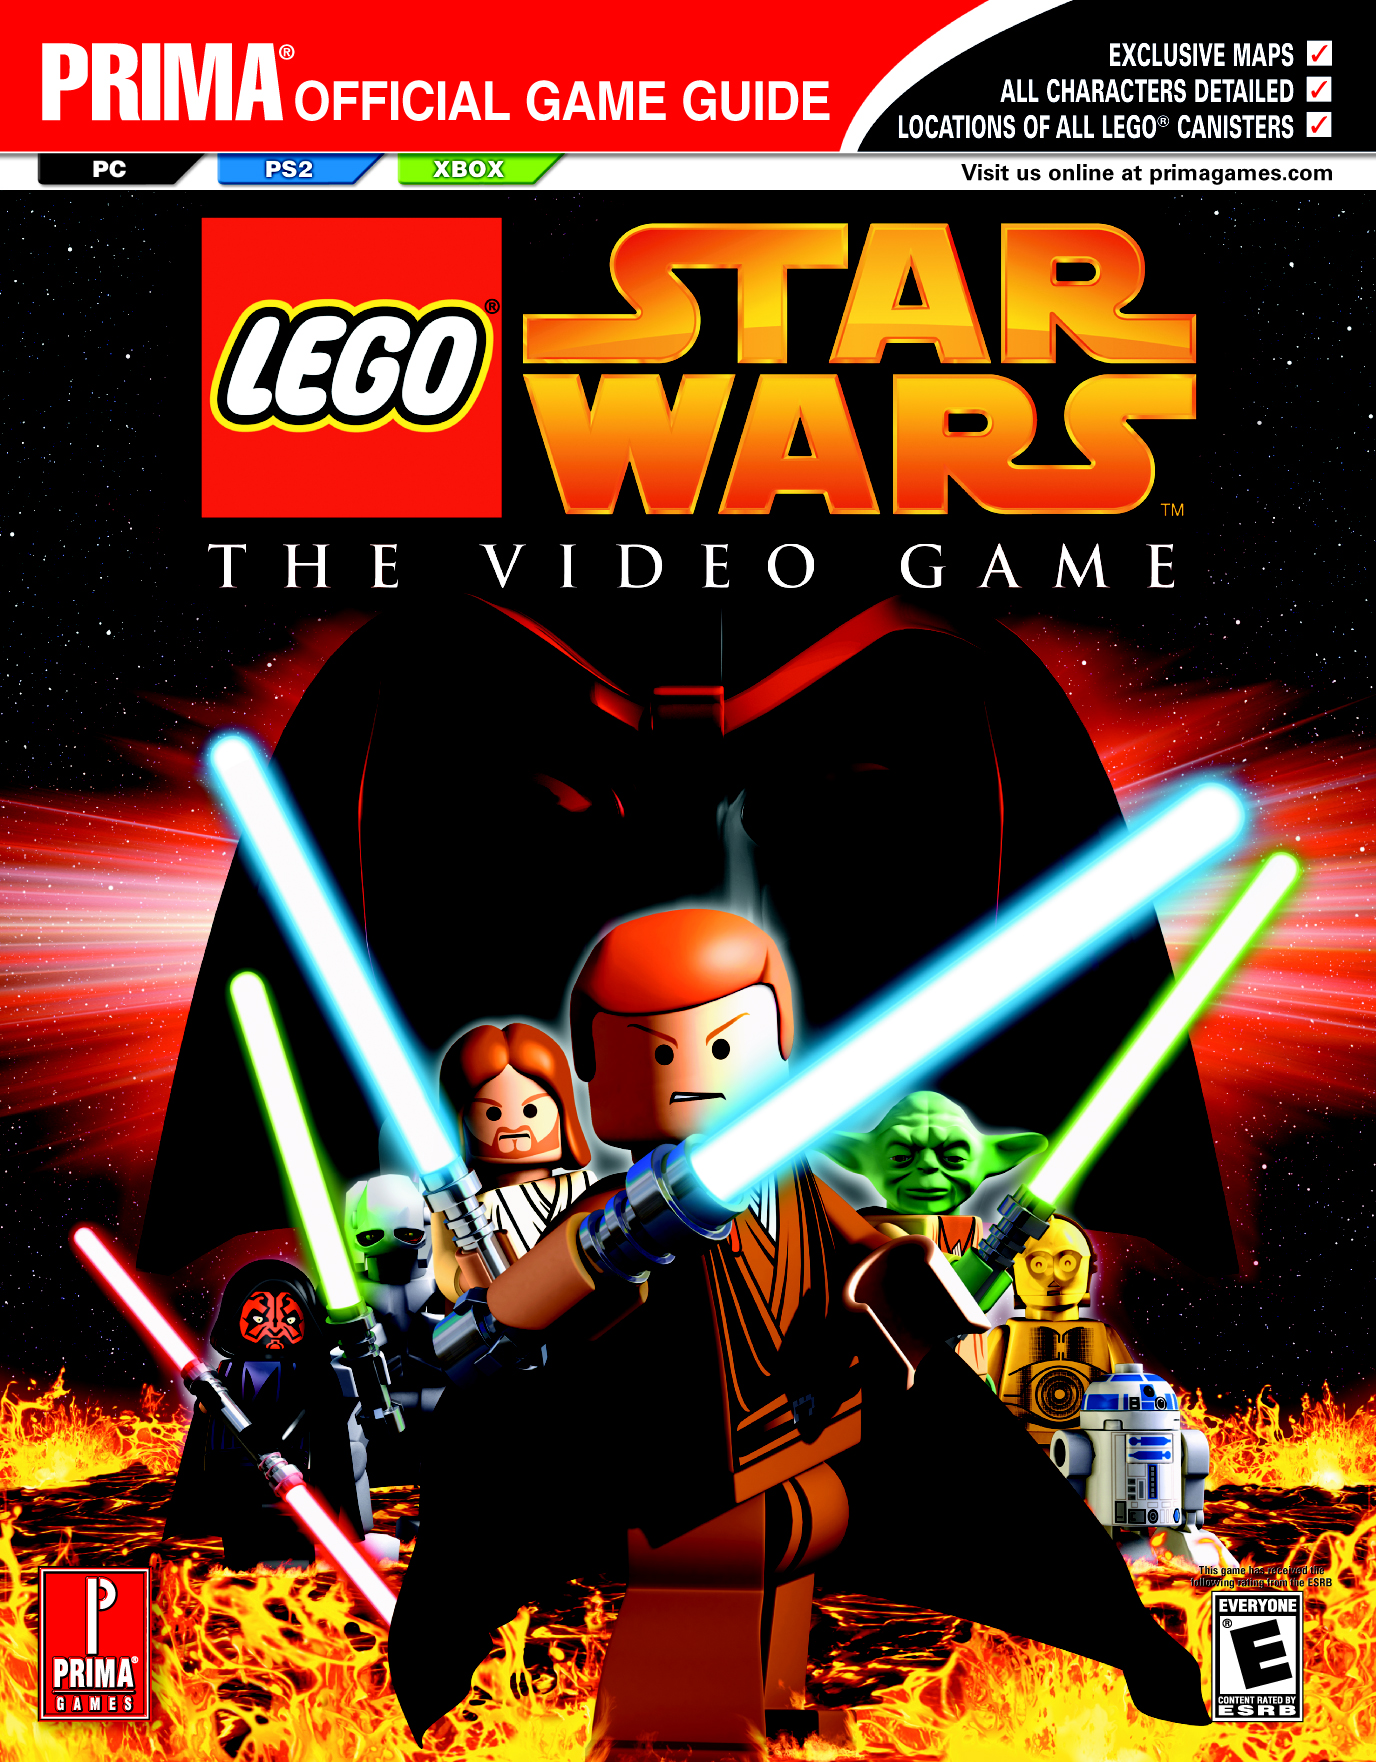 Lego star wars the video game prima official game guide wookieepedia the star wars wiki - Lego star warse ...